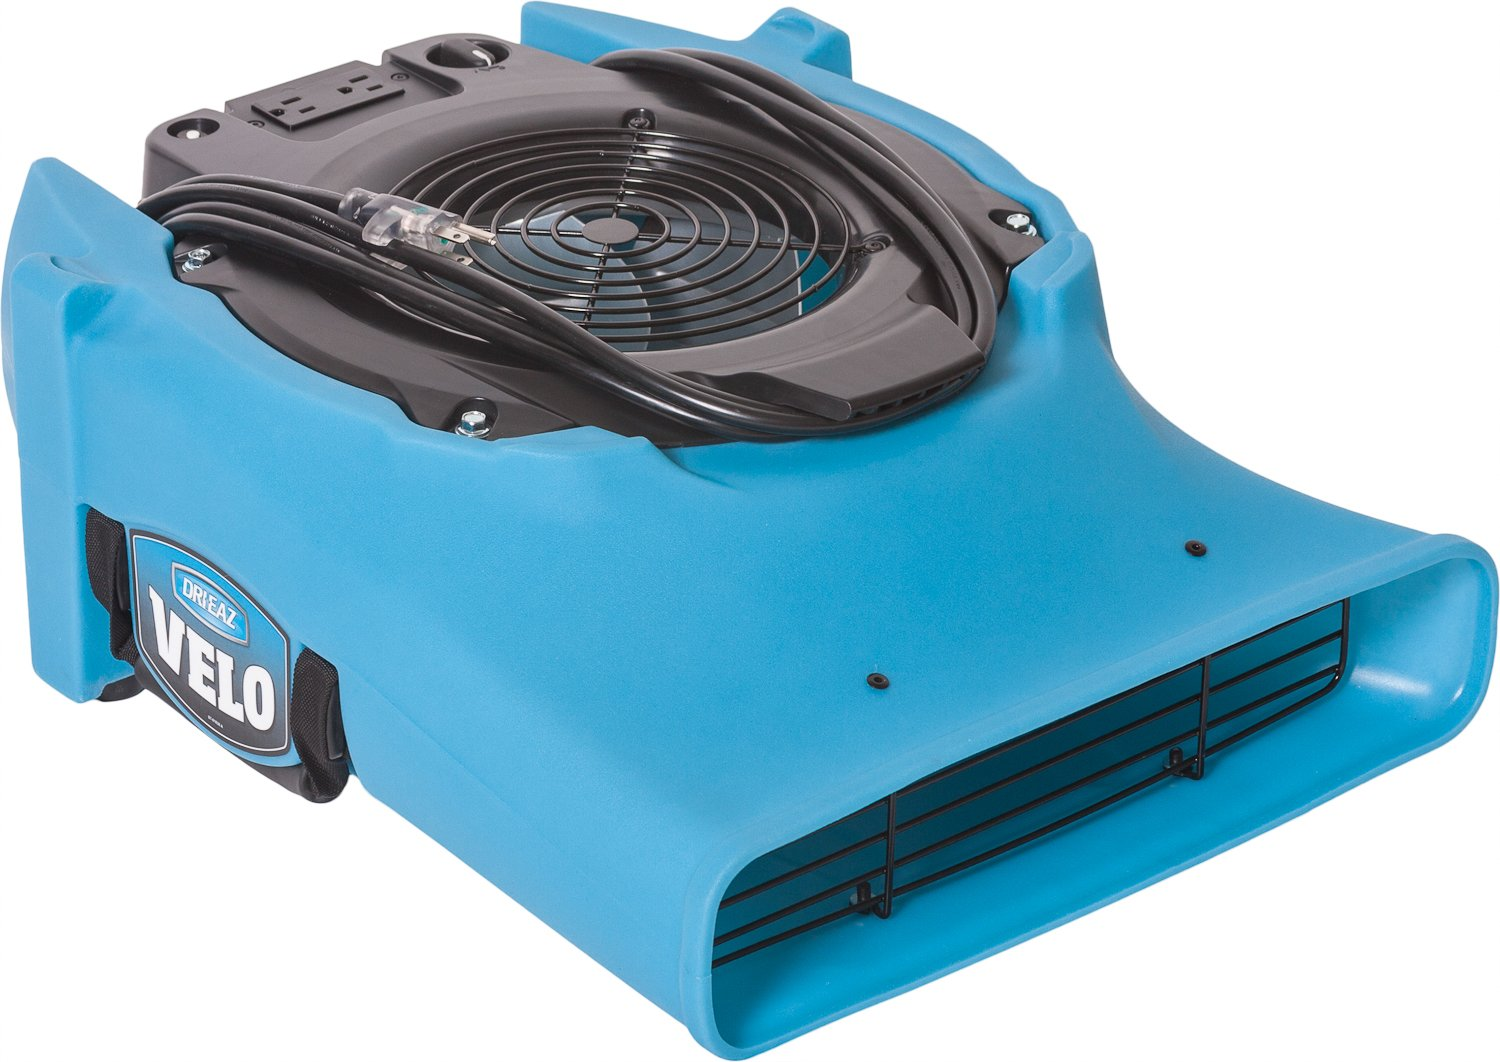 3700-8 Dri-Eaz Low Profile Air Mover